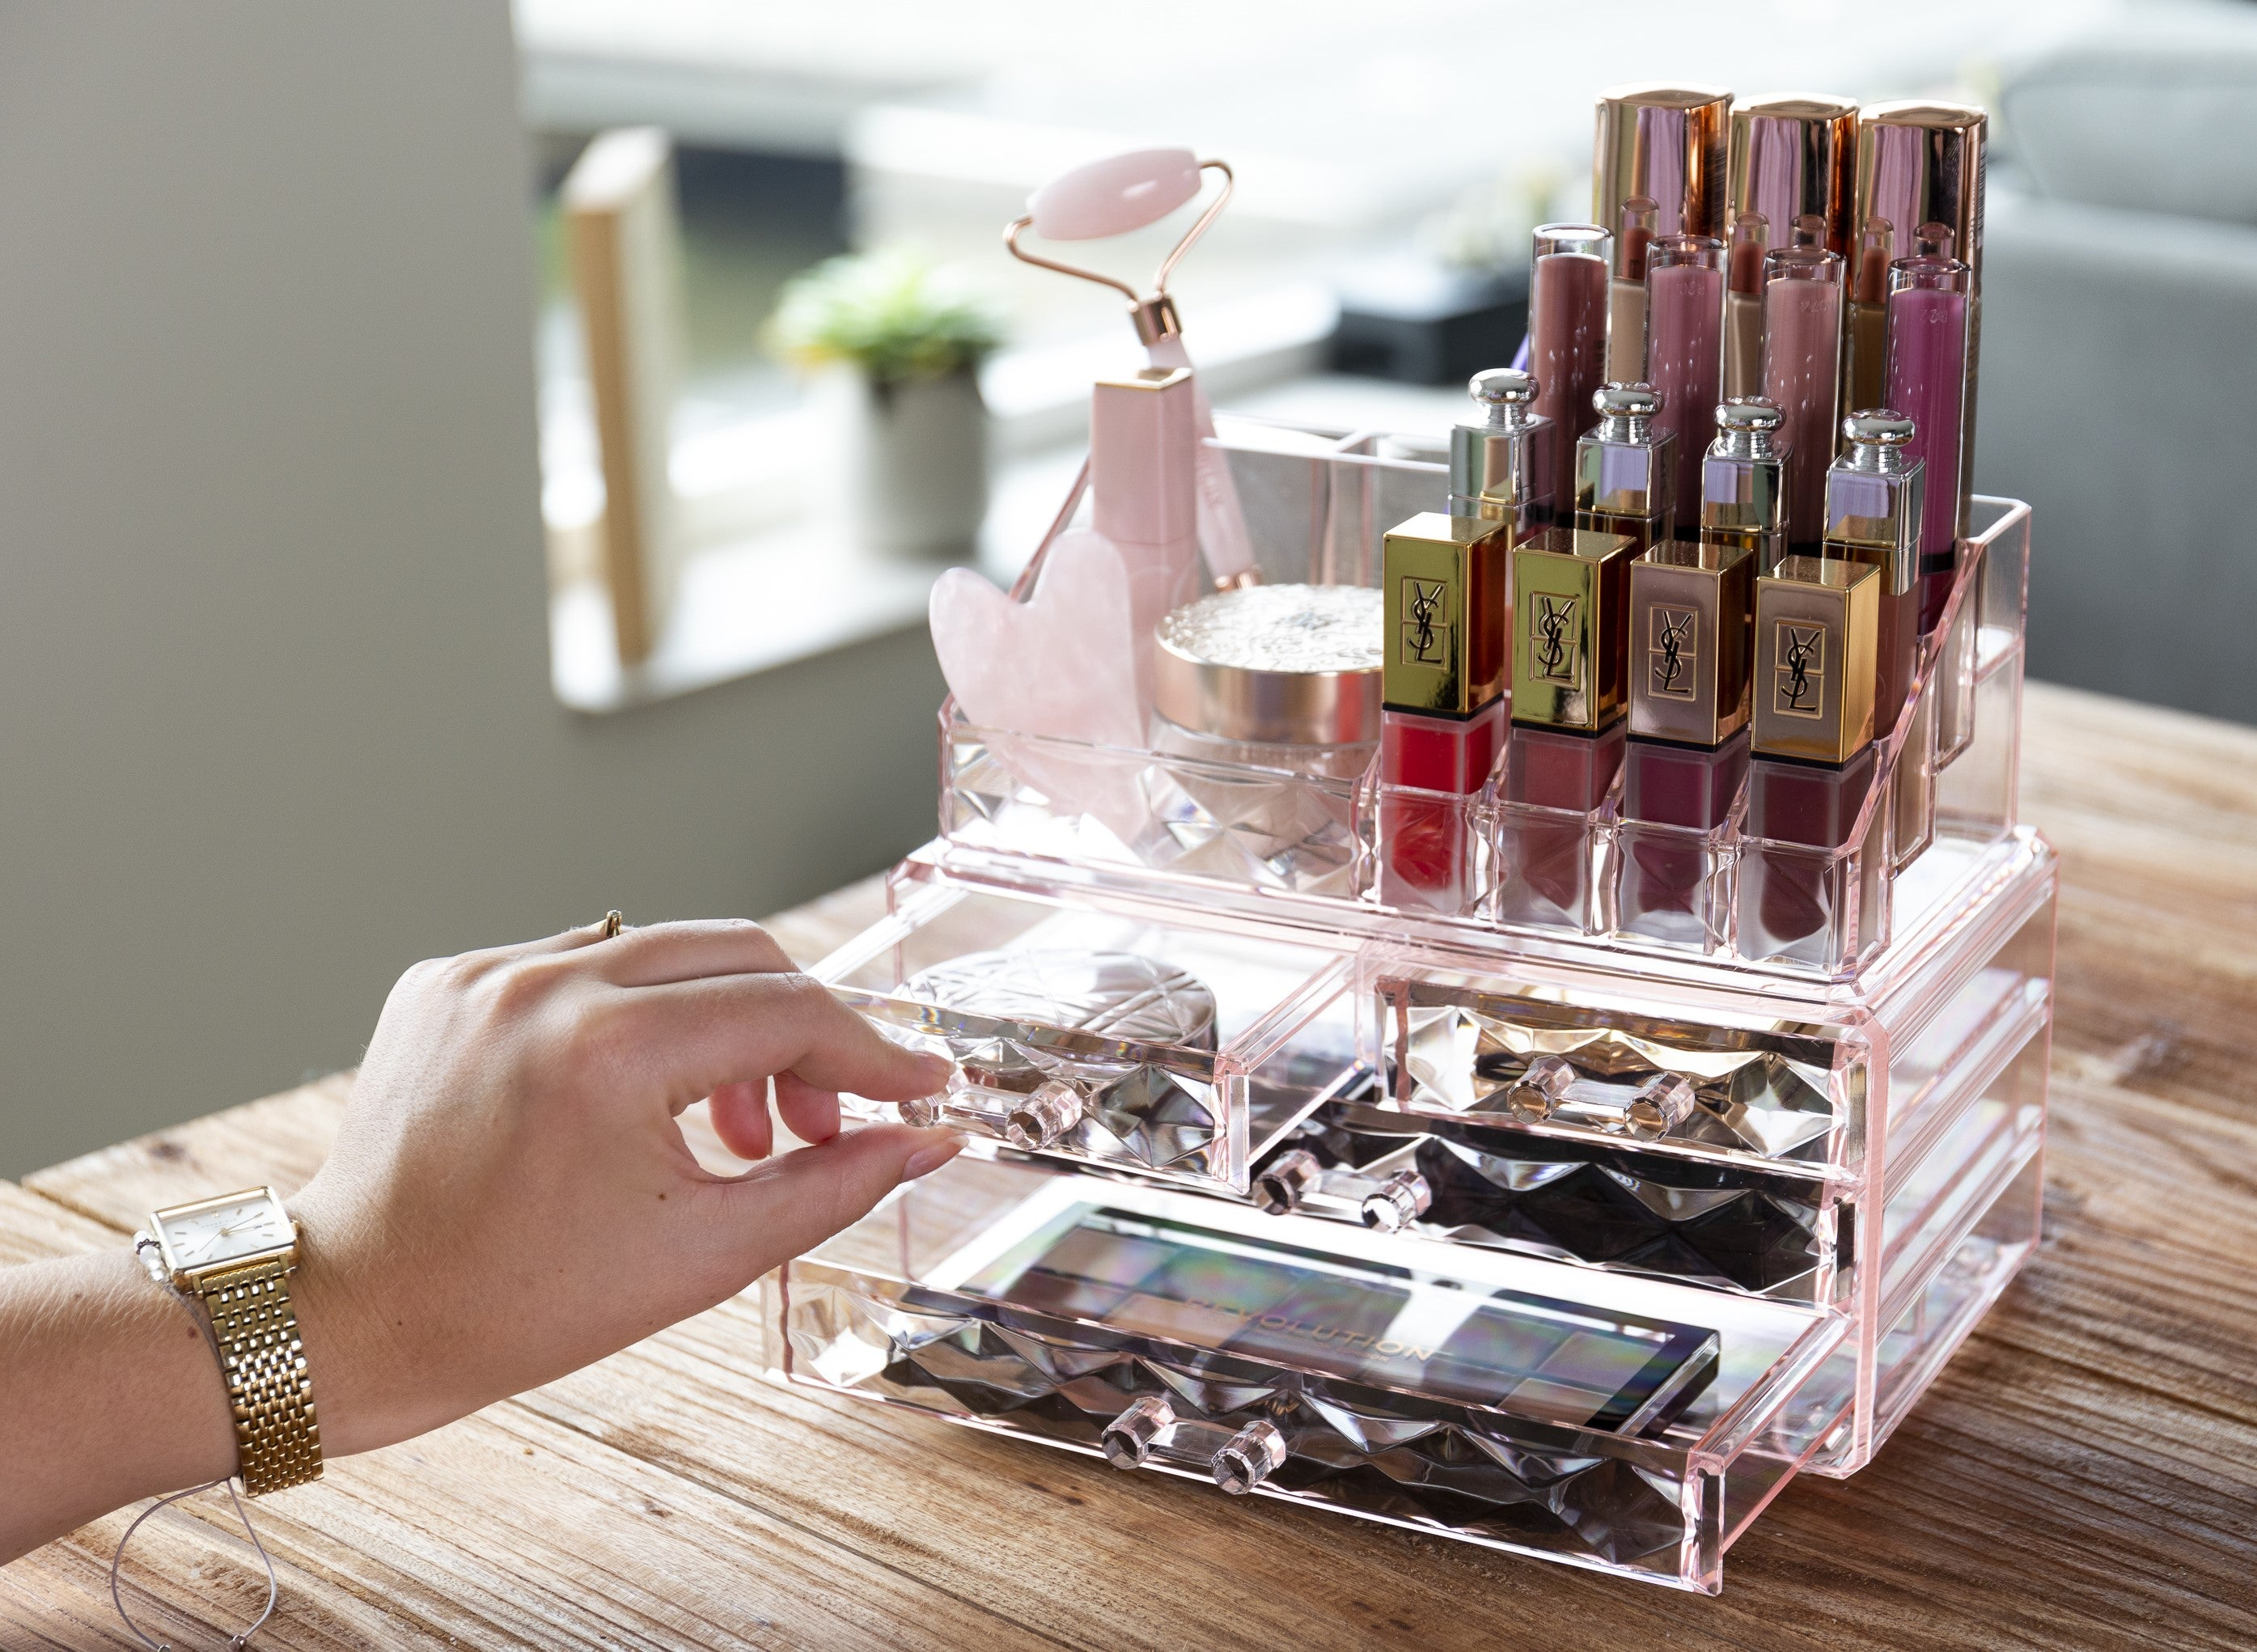 LimberLux Make-up Organizer